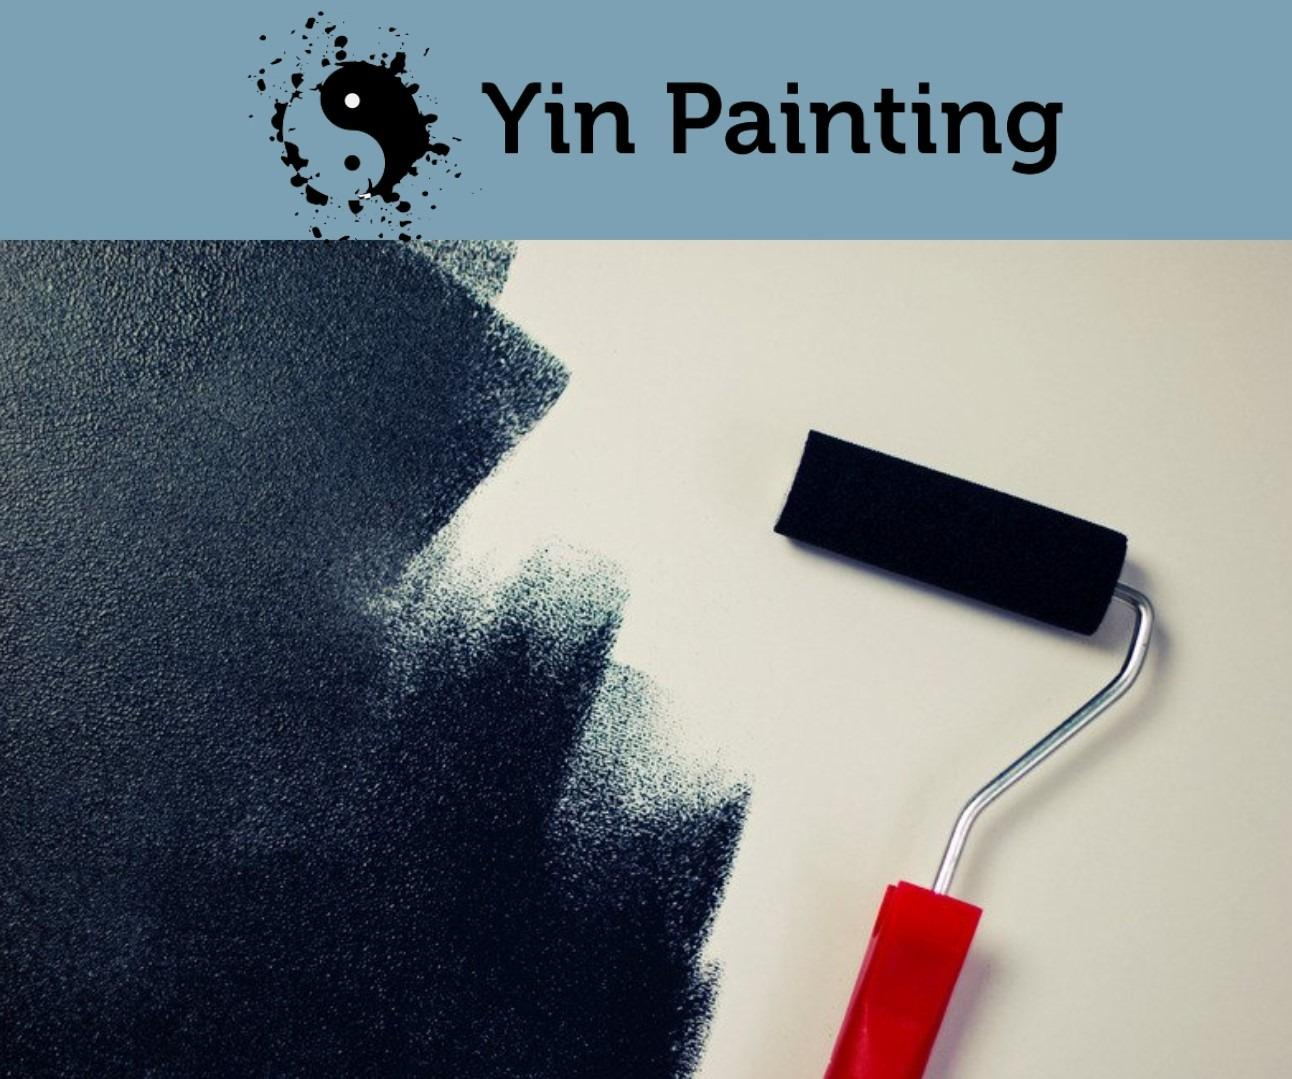 Residential painting & commercial painting services